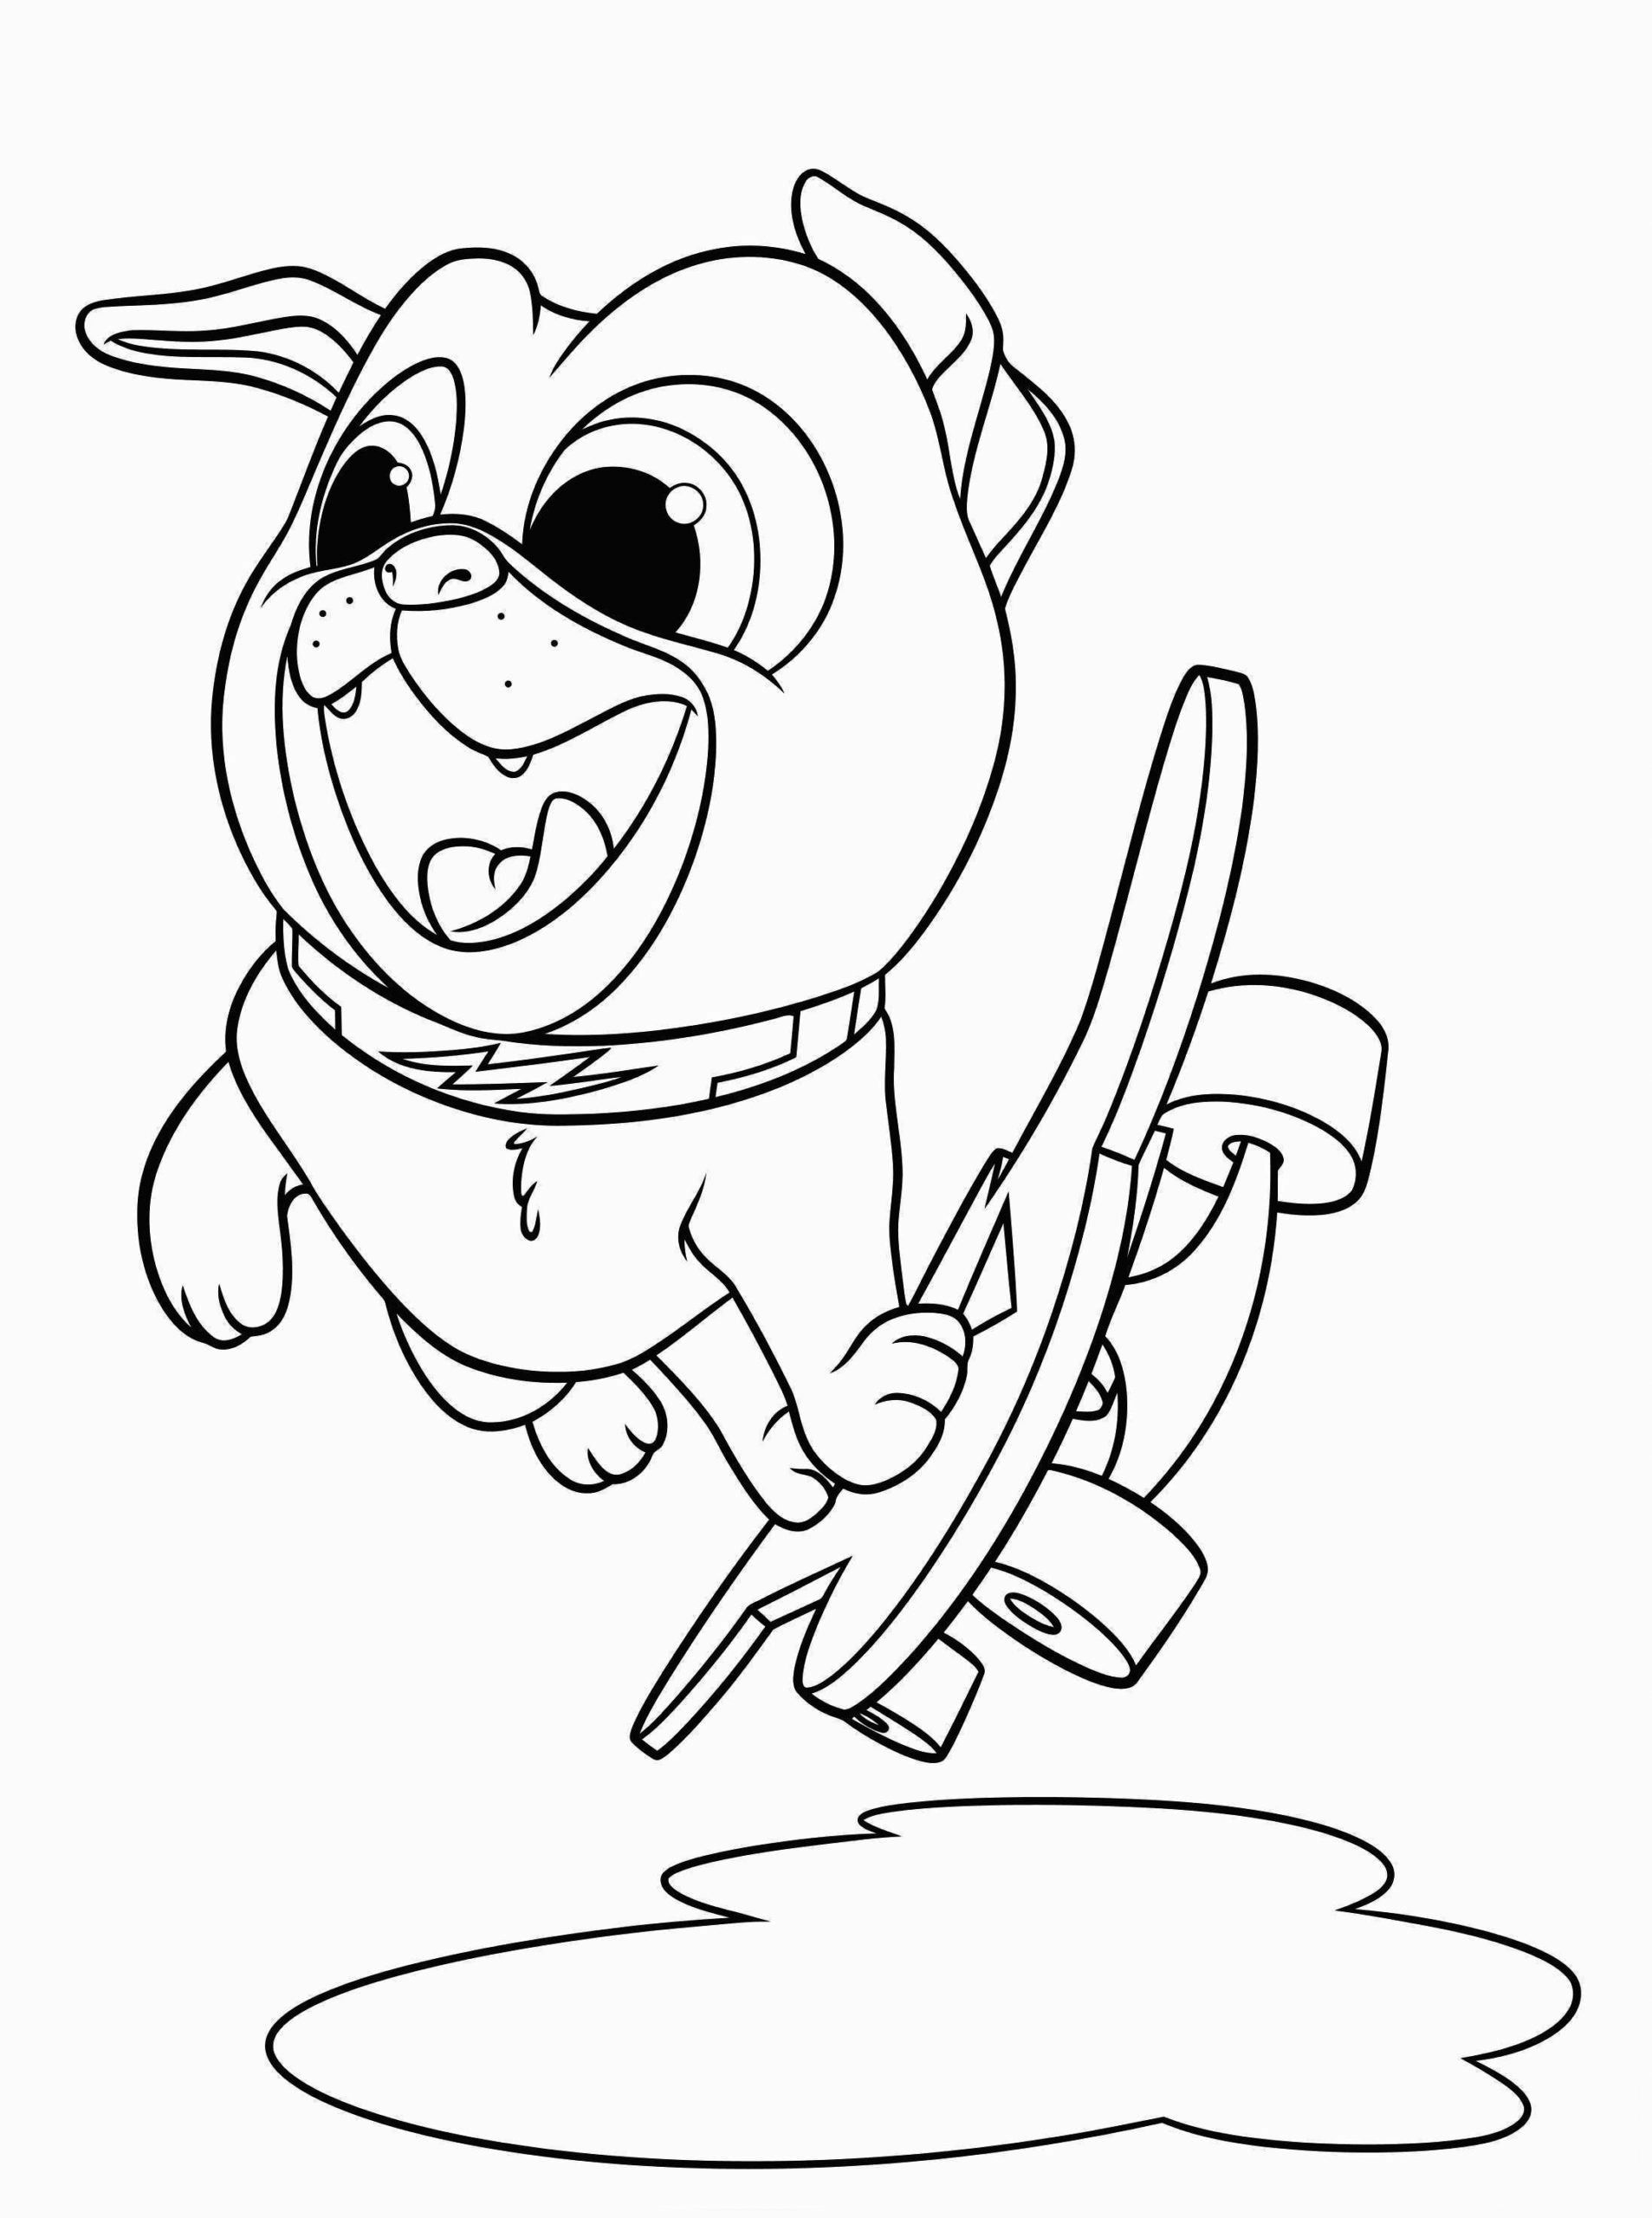 Puppy Dog Pals Coloring Pages Best Coloring Pages For